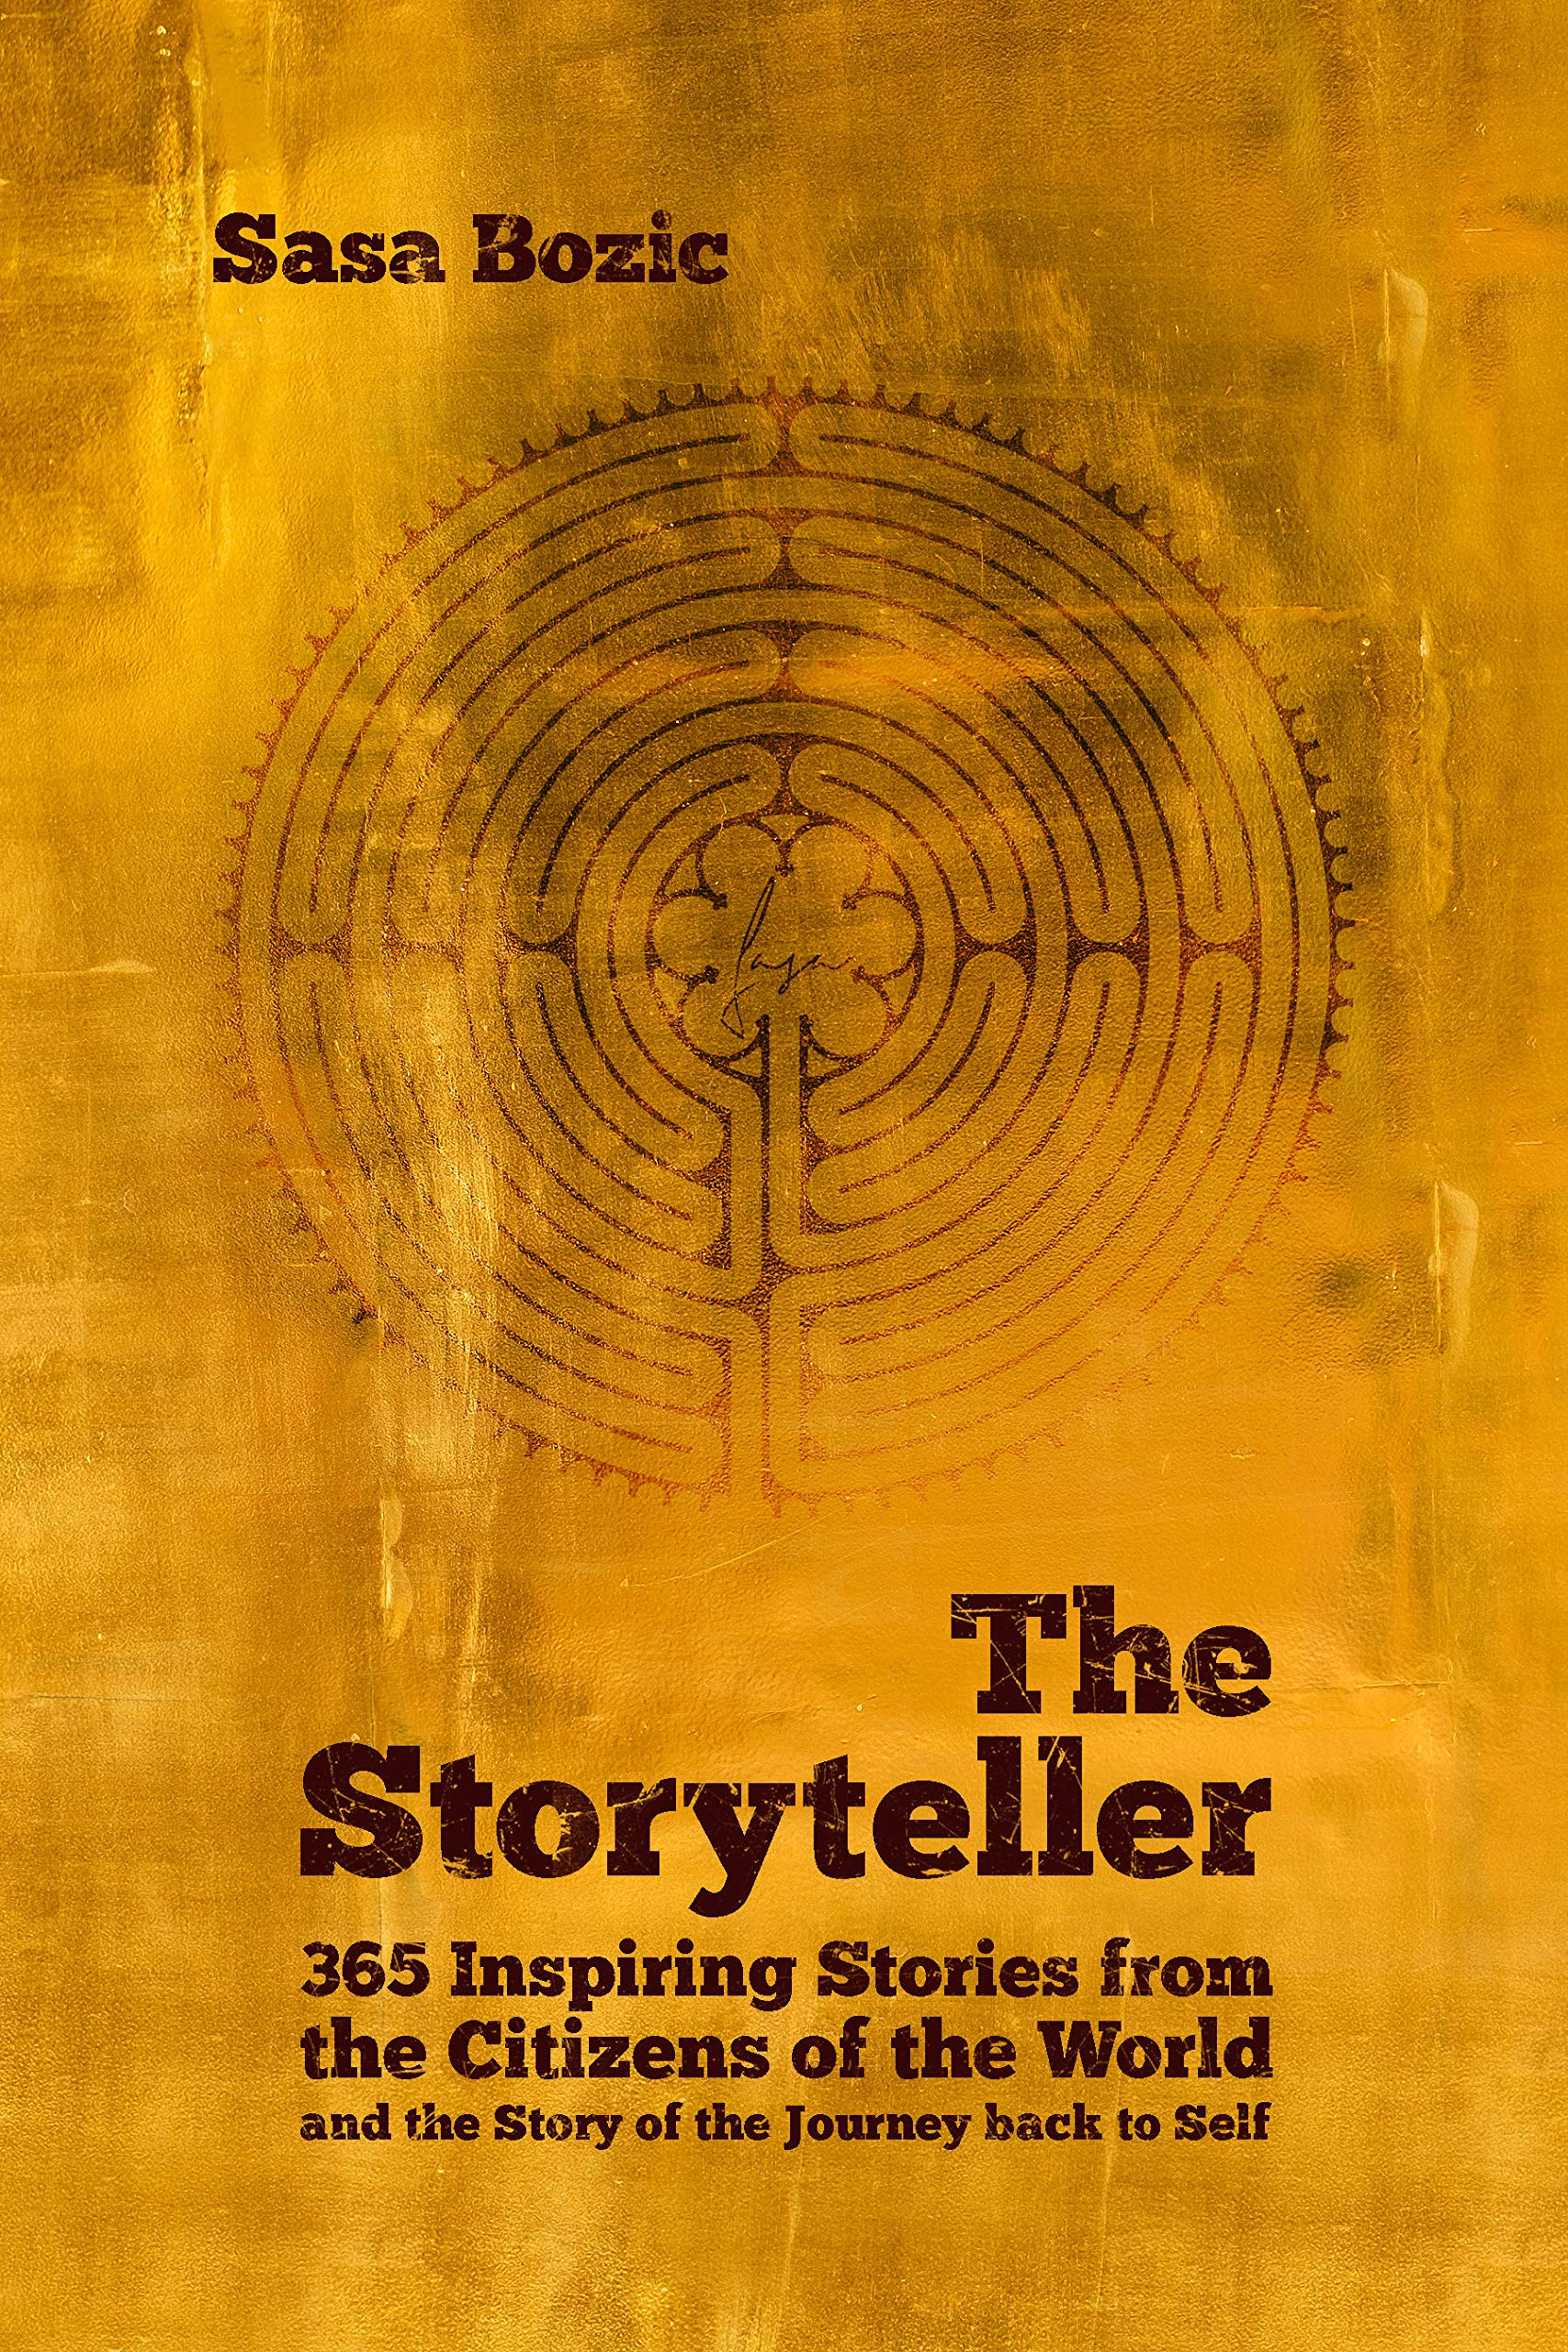 The Storyteller: 365 Inspiring Stories from the Citizens of the World and the Story of the Journey back to Self por Sasa Bozic